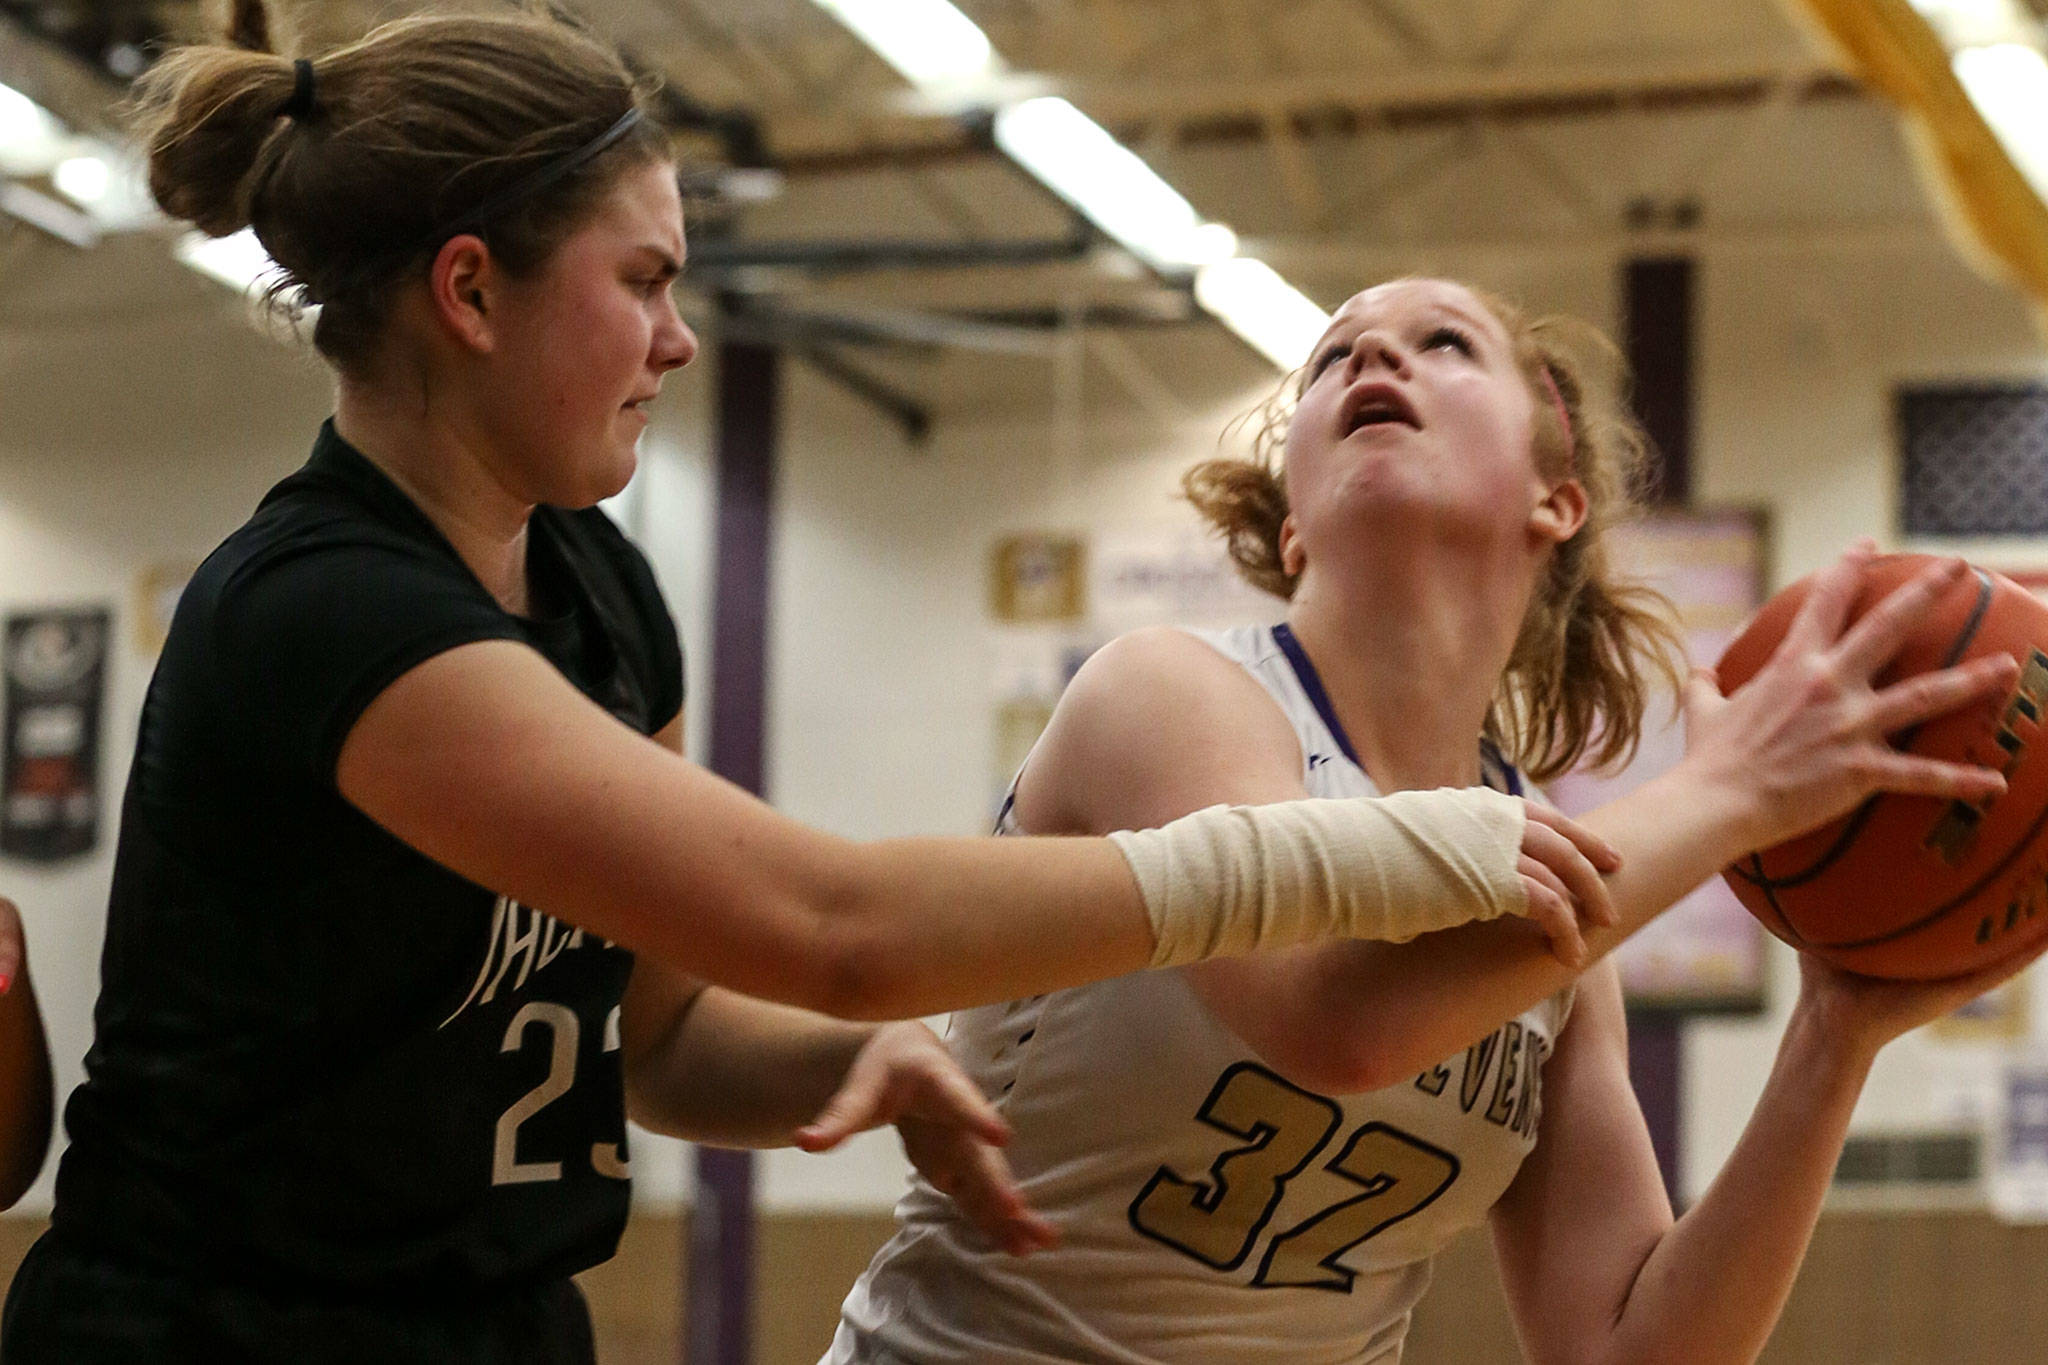 Lake Stevens' Cori Wilcox (right) looks to score with Jackson's Olivia Skibiel defending during the Vikings' 62-39 win Tuesday night at Lake Stevens High School. (Kevin Clark / The Herald)